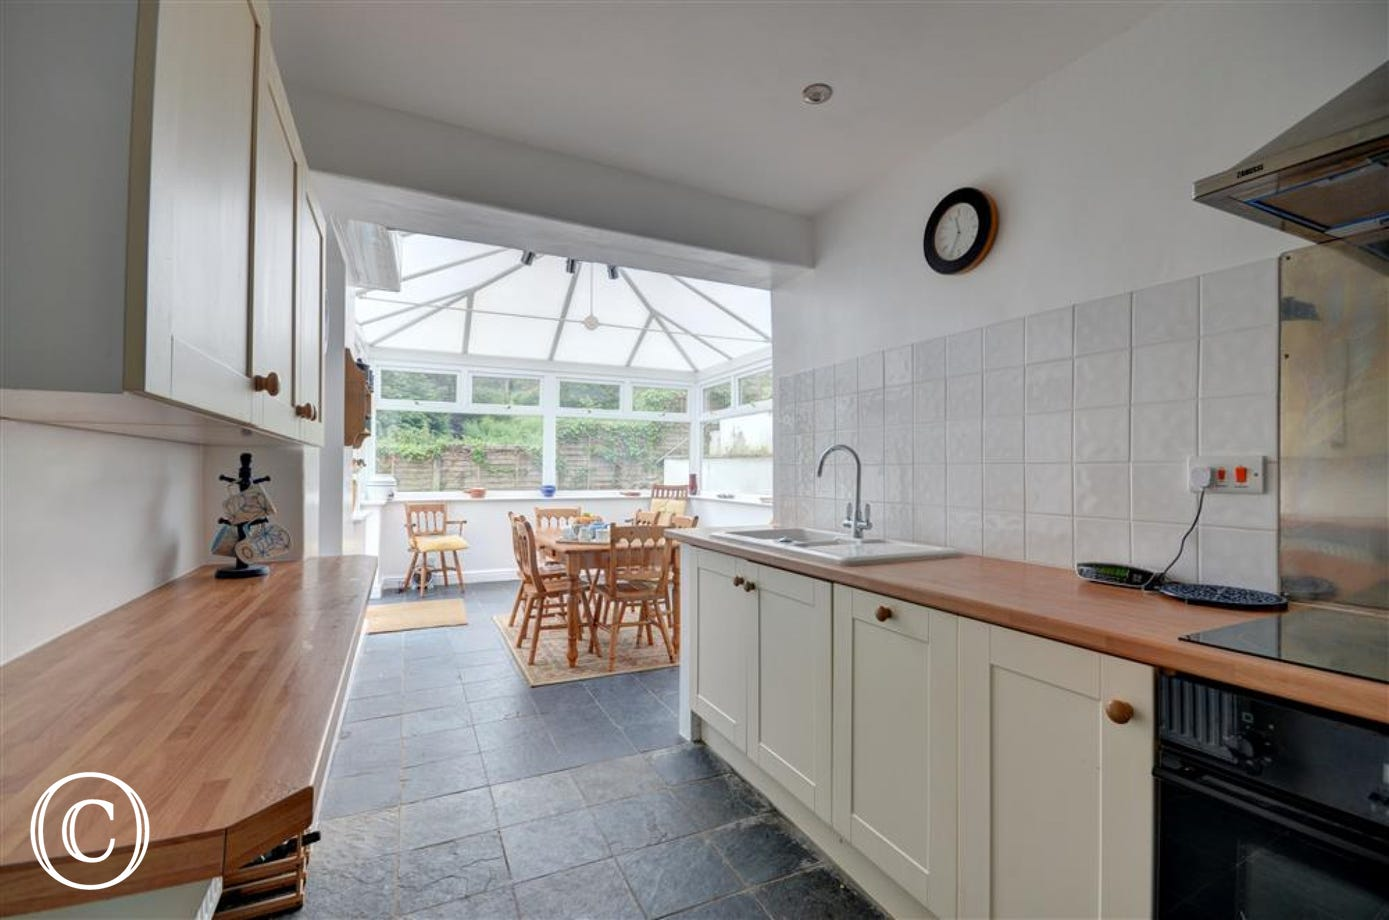 Kitchen leading onto the conservatory